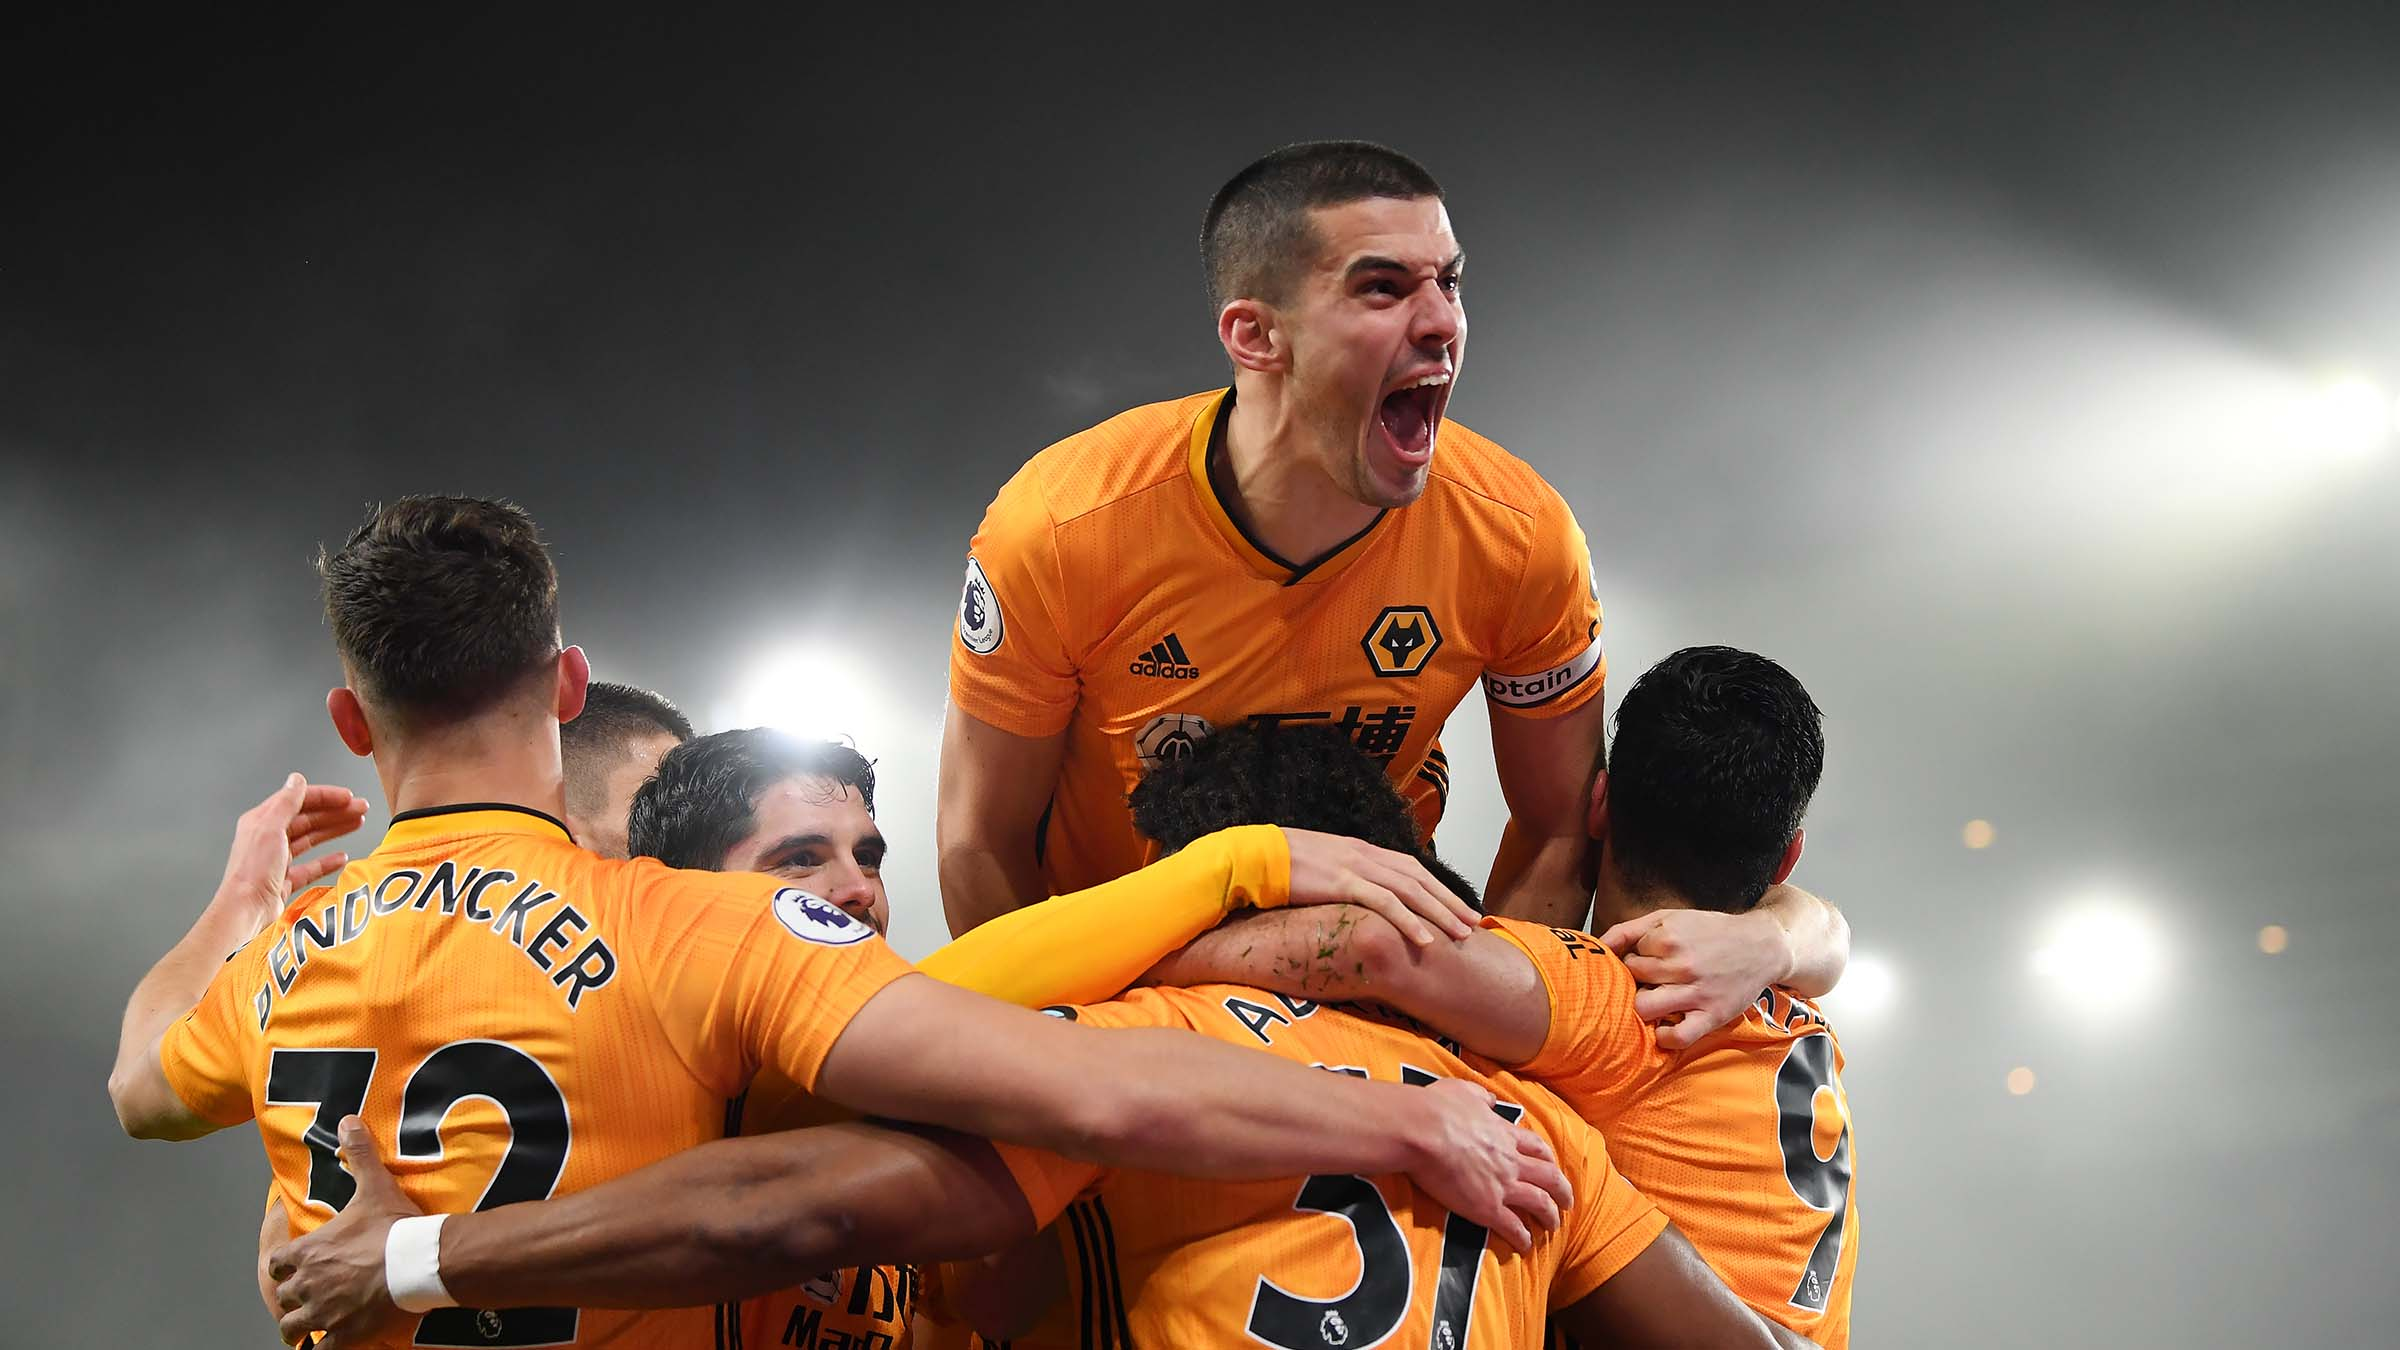 Coady on the positives and learning from mistakes